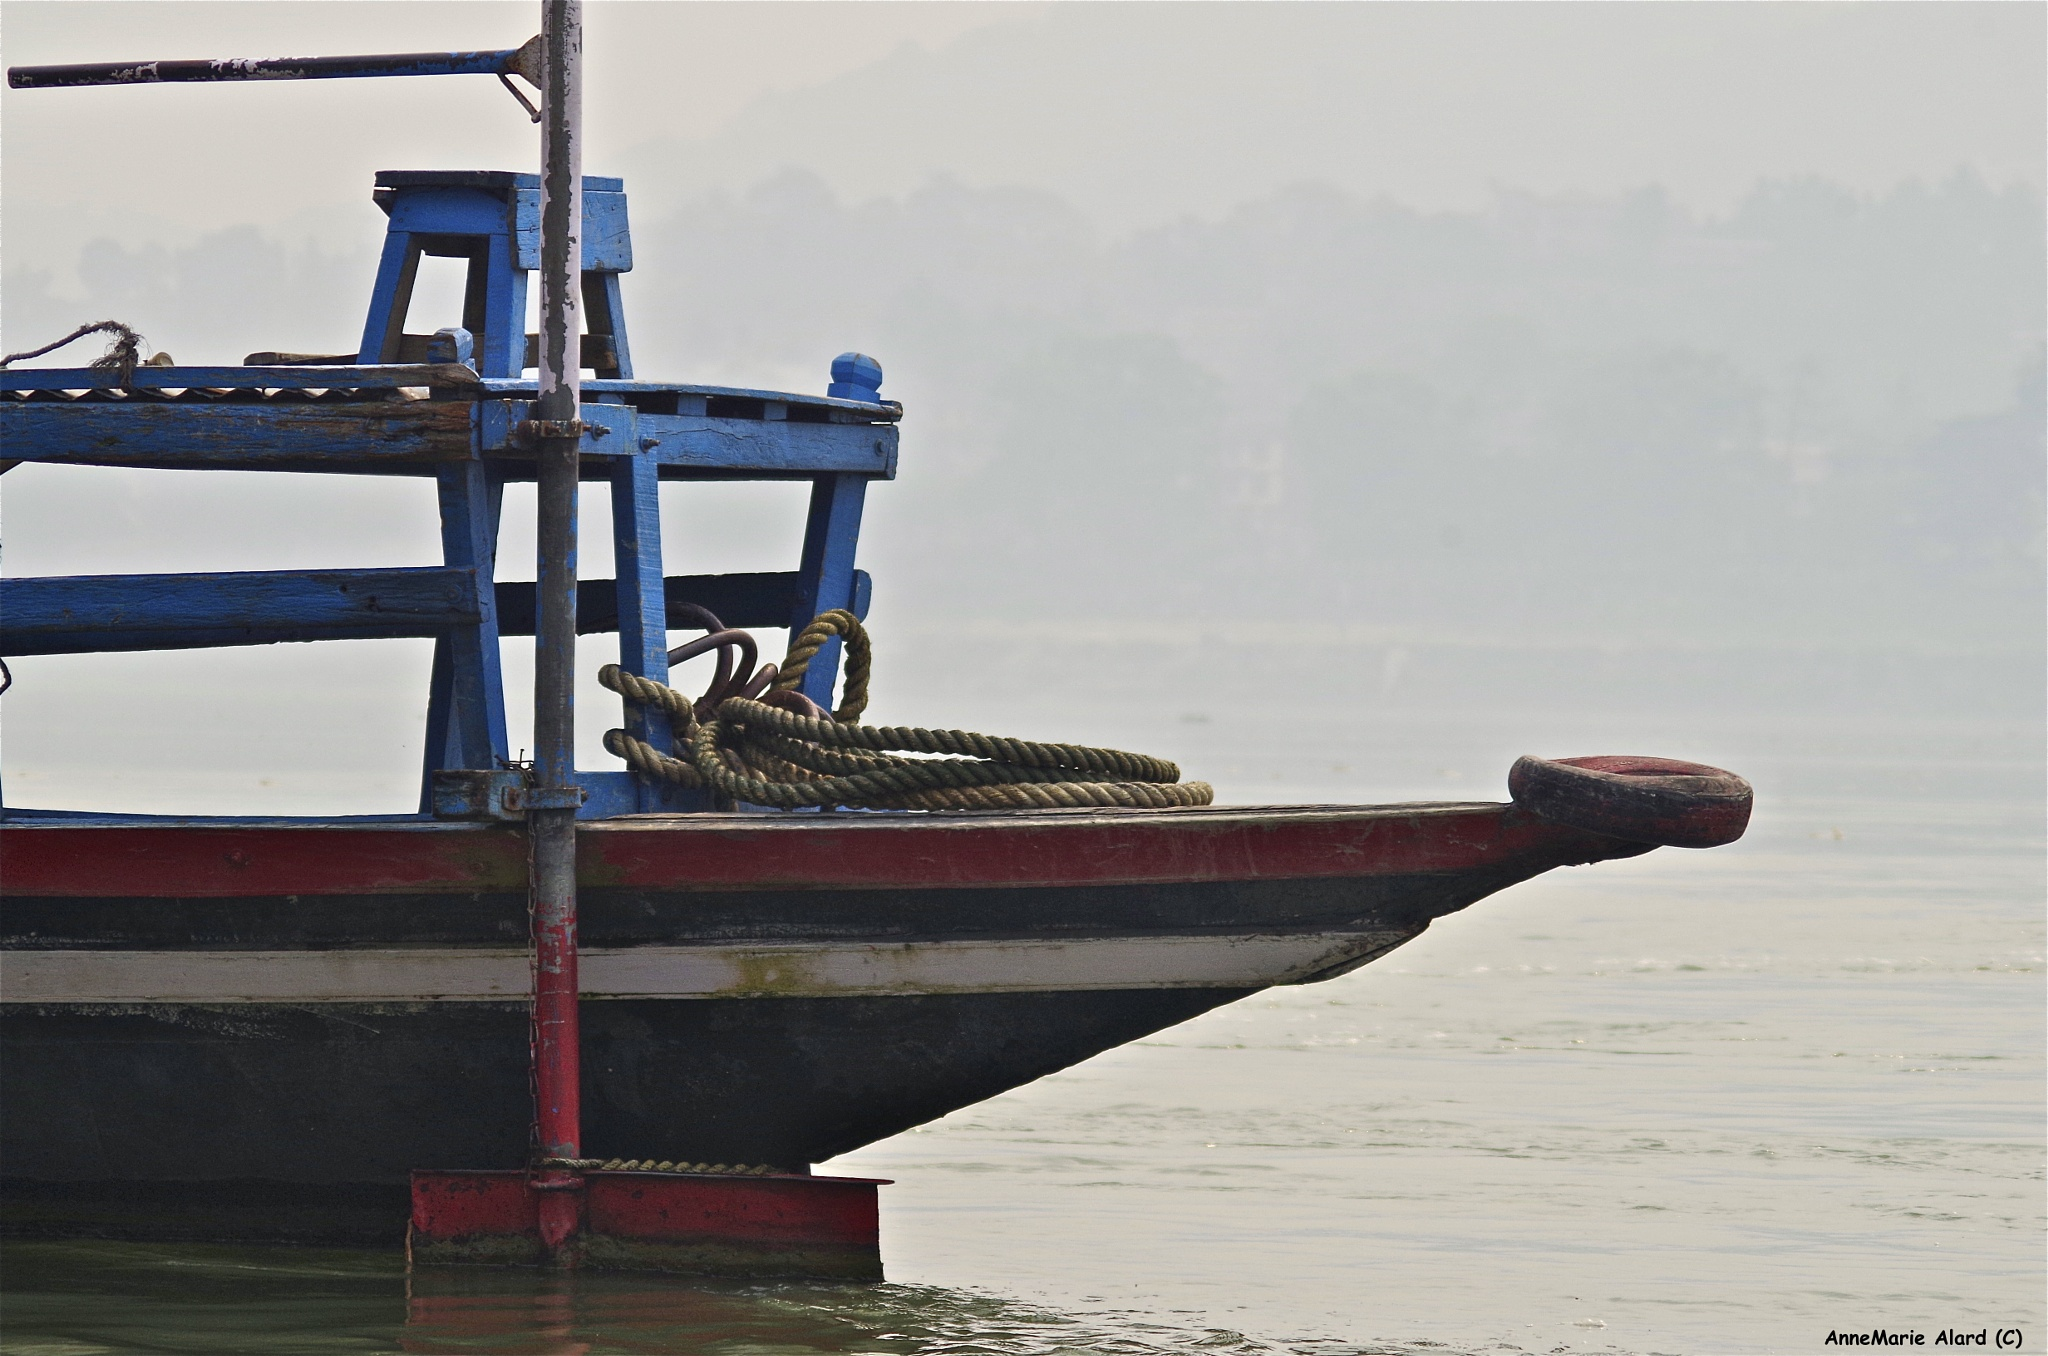 Paboat from India by annemariealard